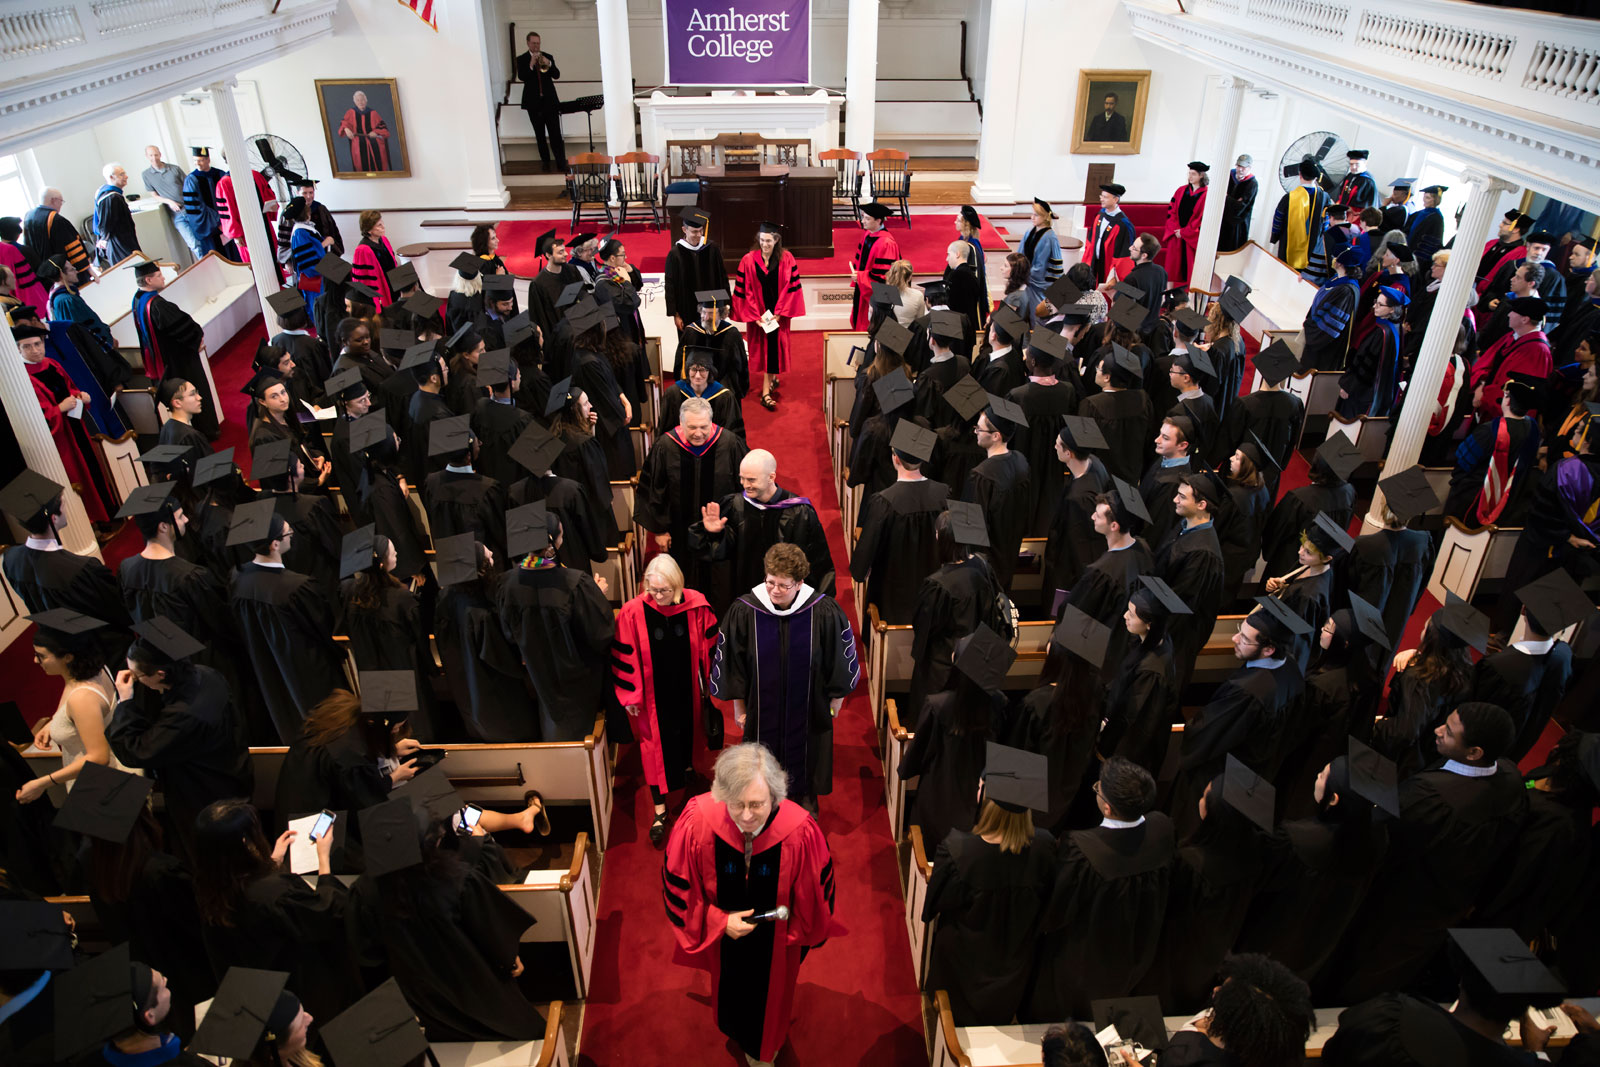 The procession of faculty enters Johnson Chapel, broader view